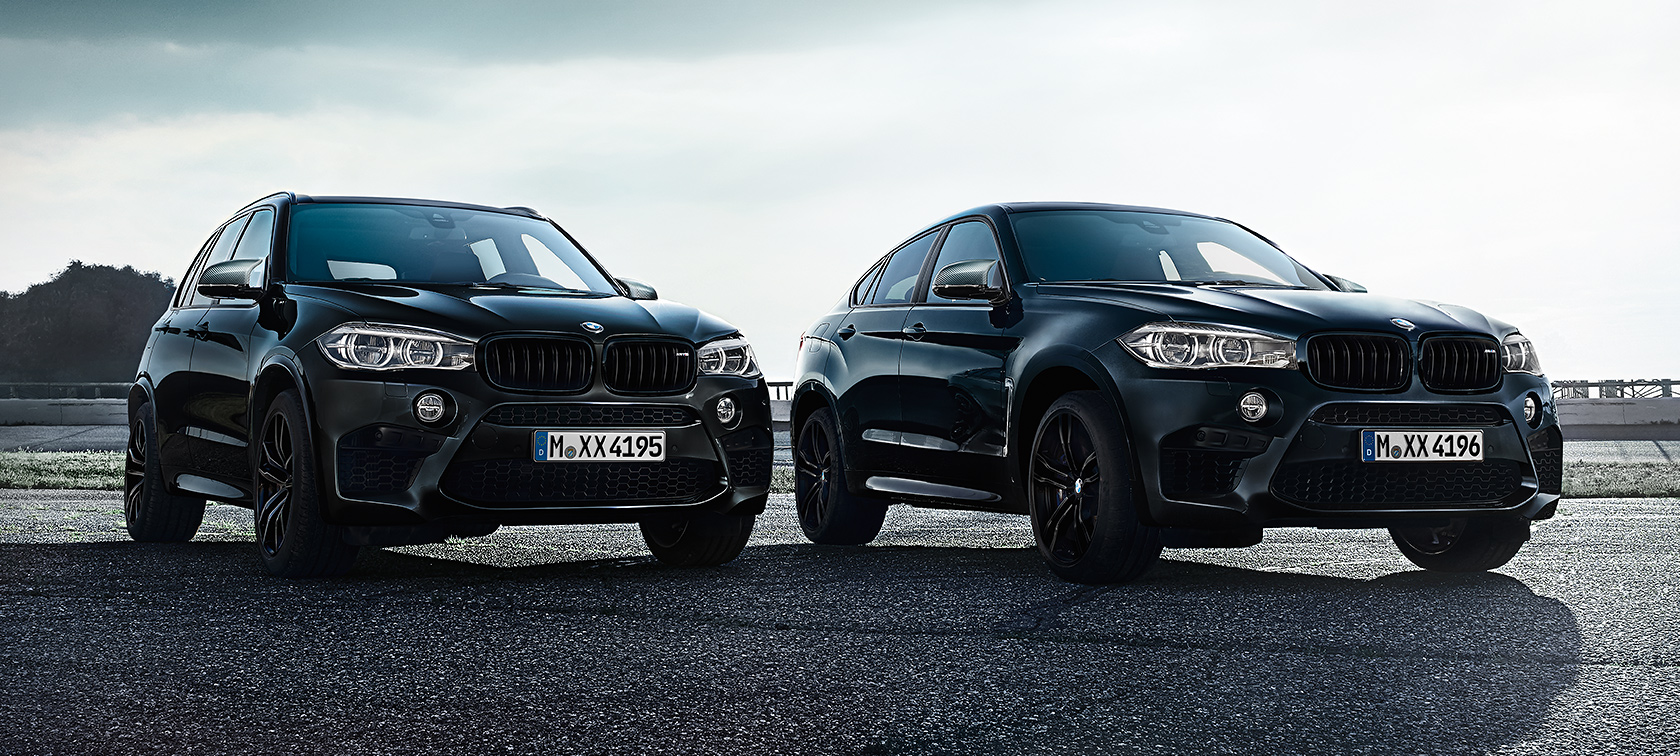 4e5f83101e4 Edition Black Fire of the BMW X5 M and the BMW X6 M